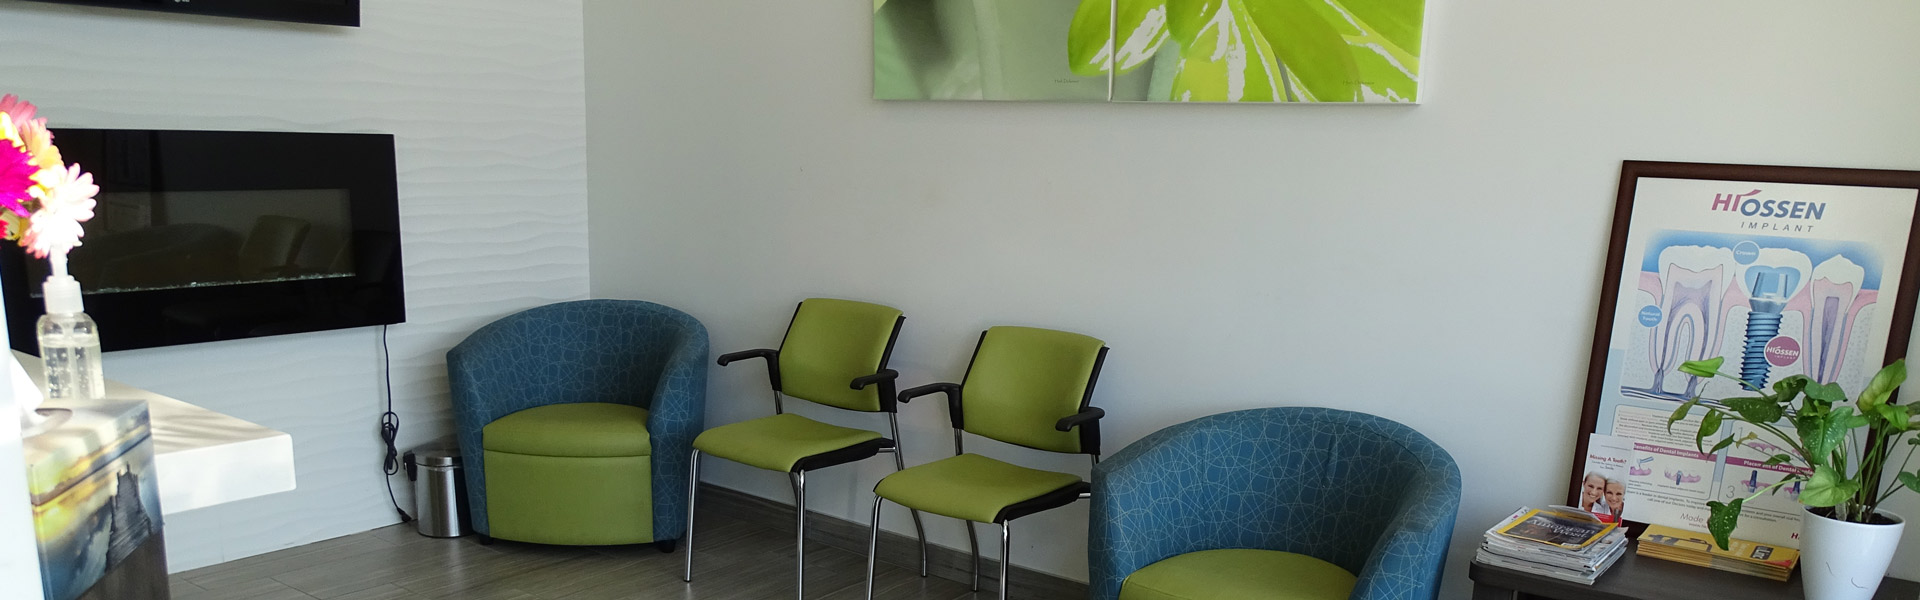 slider-beamsville-dental-office